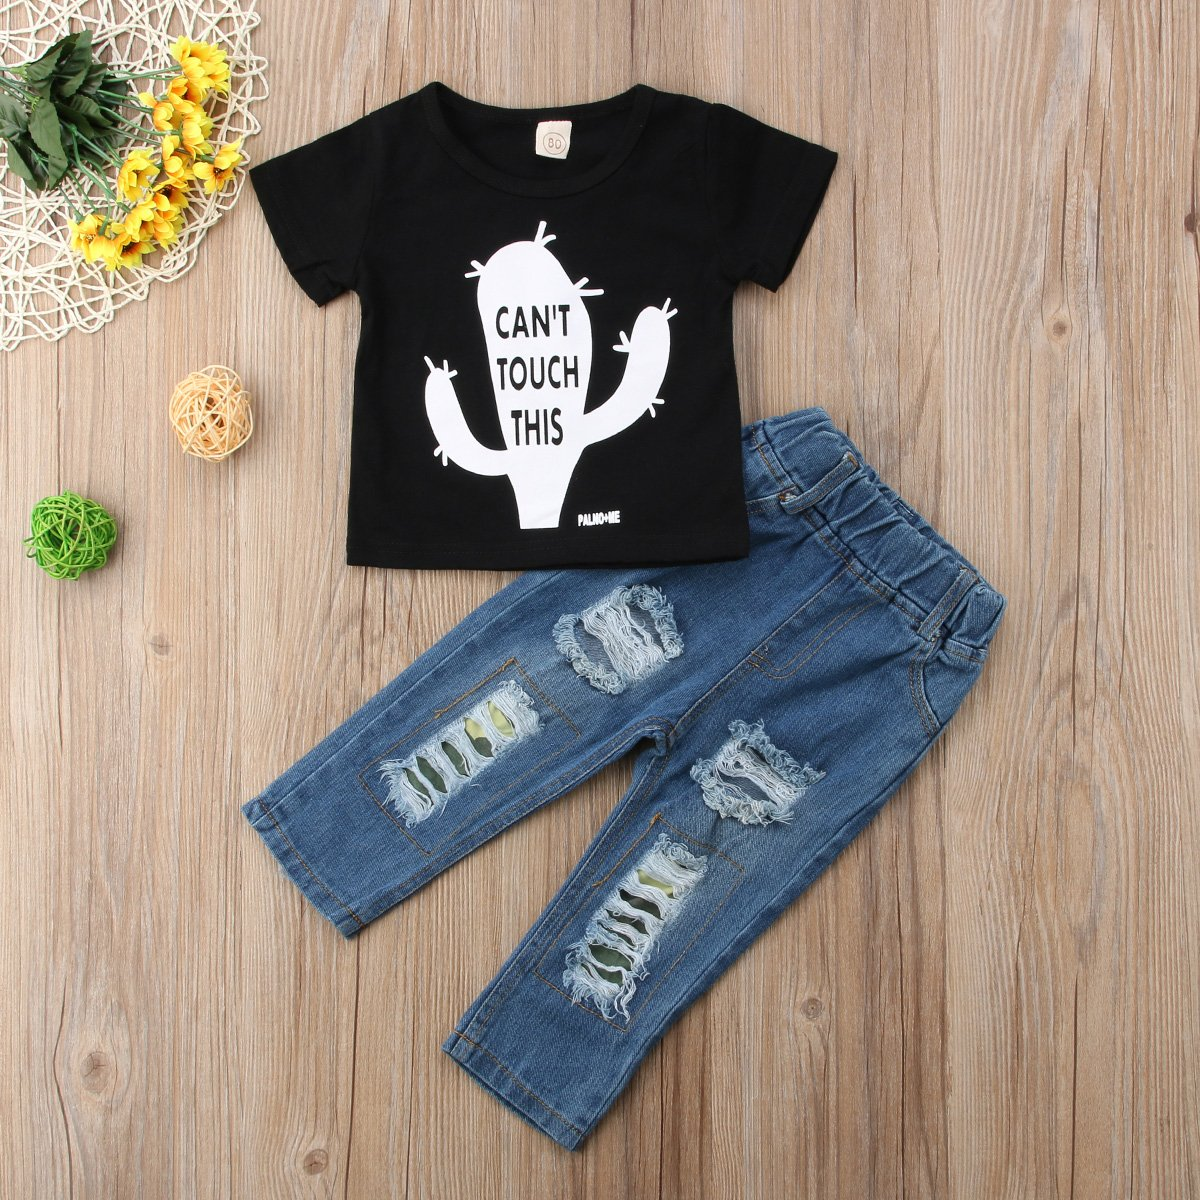 Ripped Denim Long Pants Jeans Trousers 2Pcs//Set Listogether Toddler Kids Boys Short Sleeve Cotton T-Shirt Tops